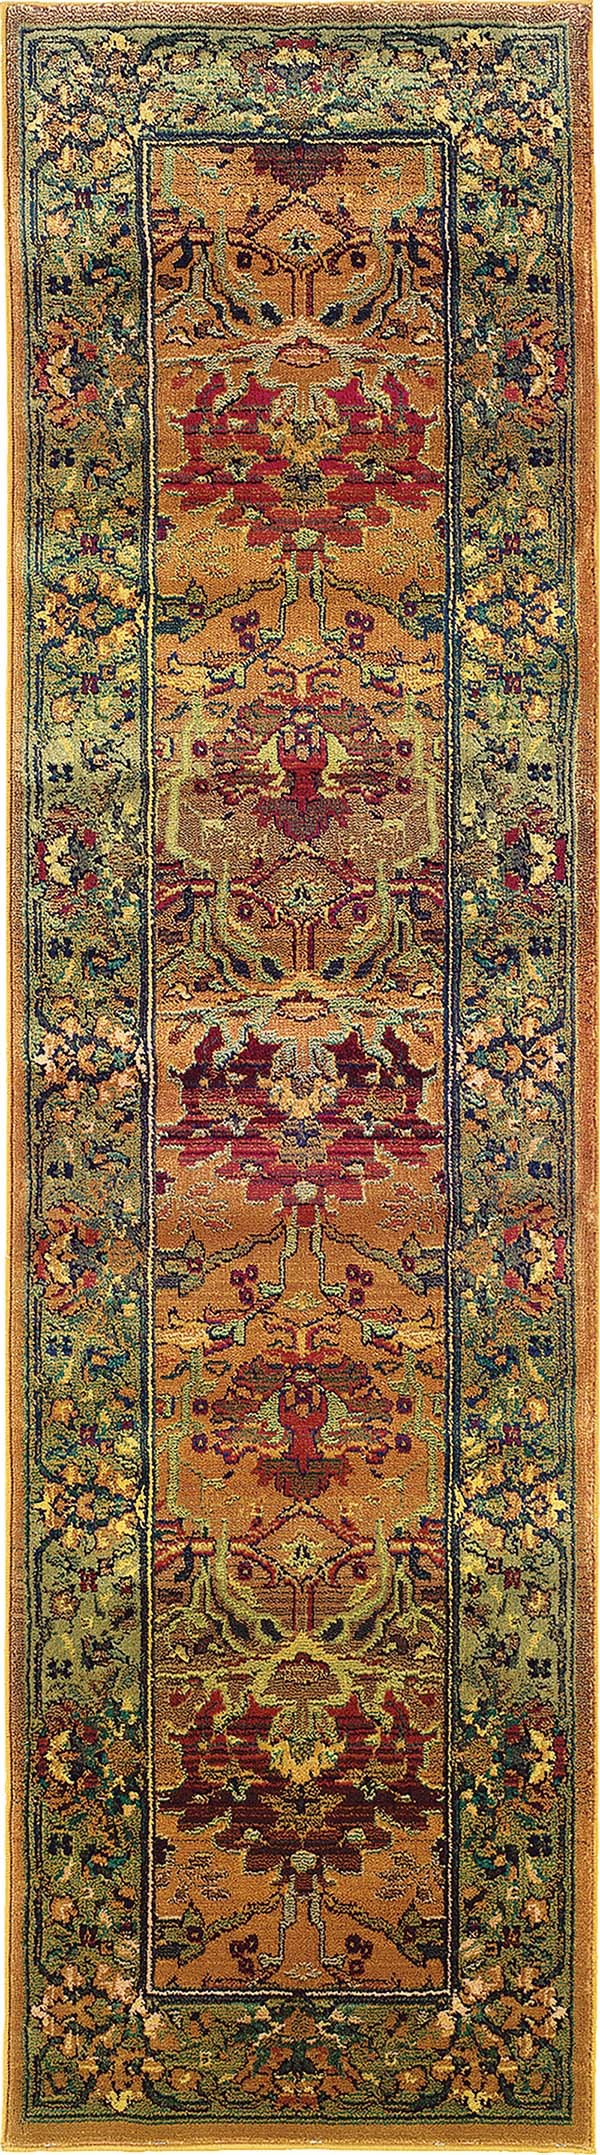 Green, Beige Traditional / Oriental Area Rug